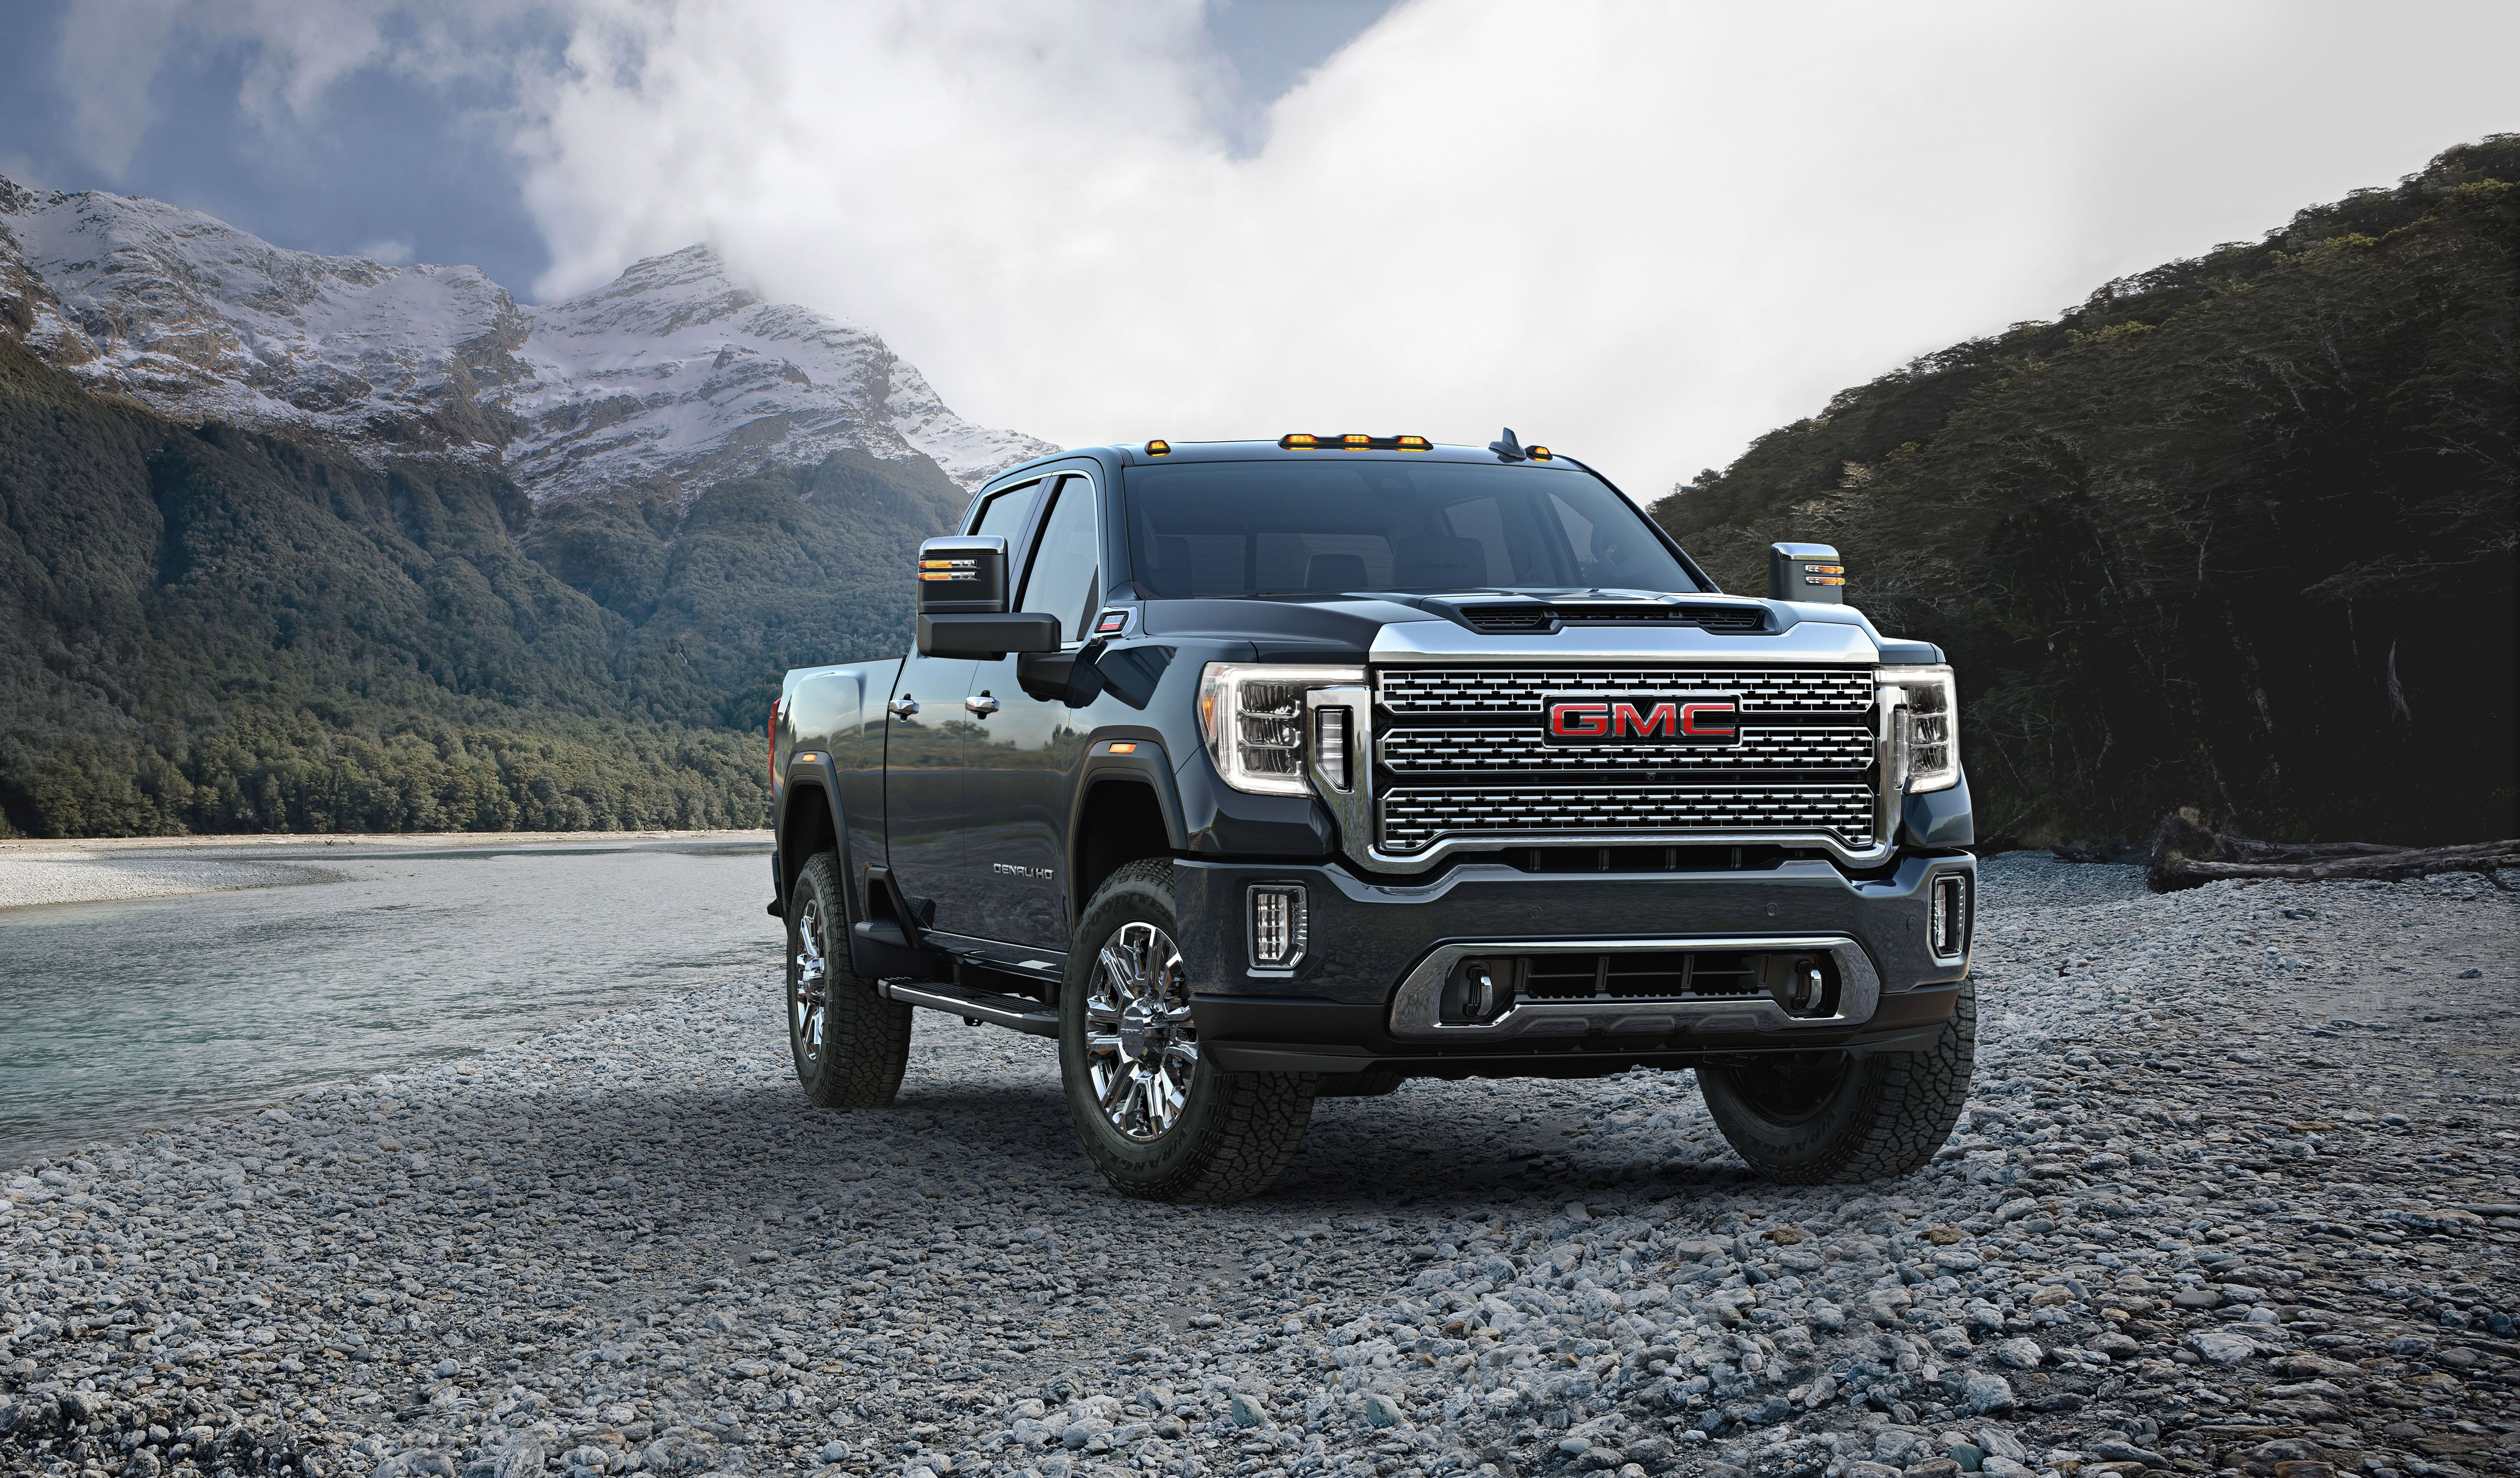 2020 Gmc Sierra Hd Review, Pricing, And Specs 2020 Gmc Sierra 2500Hd Interior, Msrp, Mpg